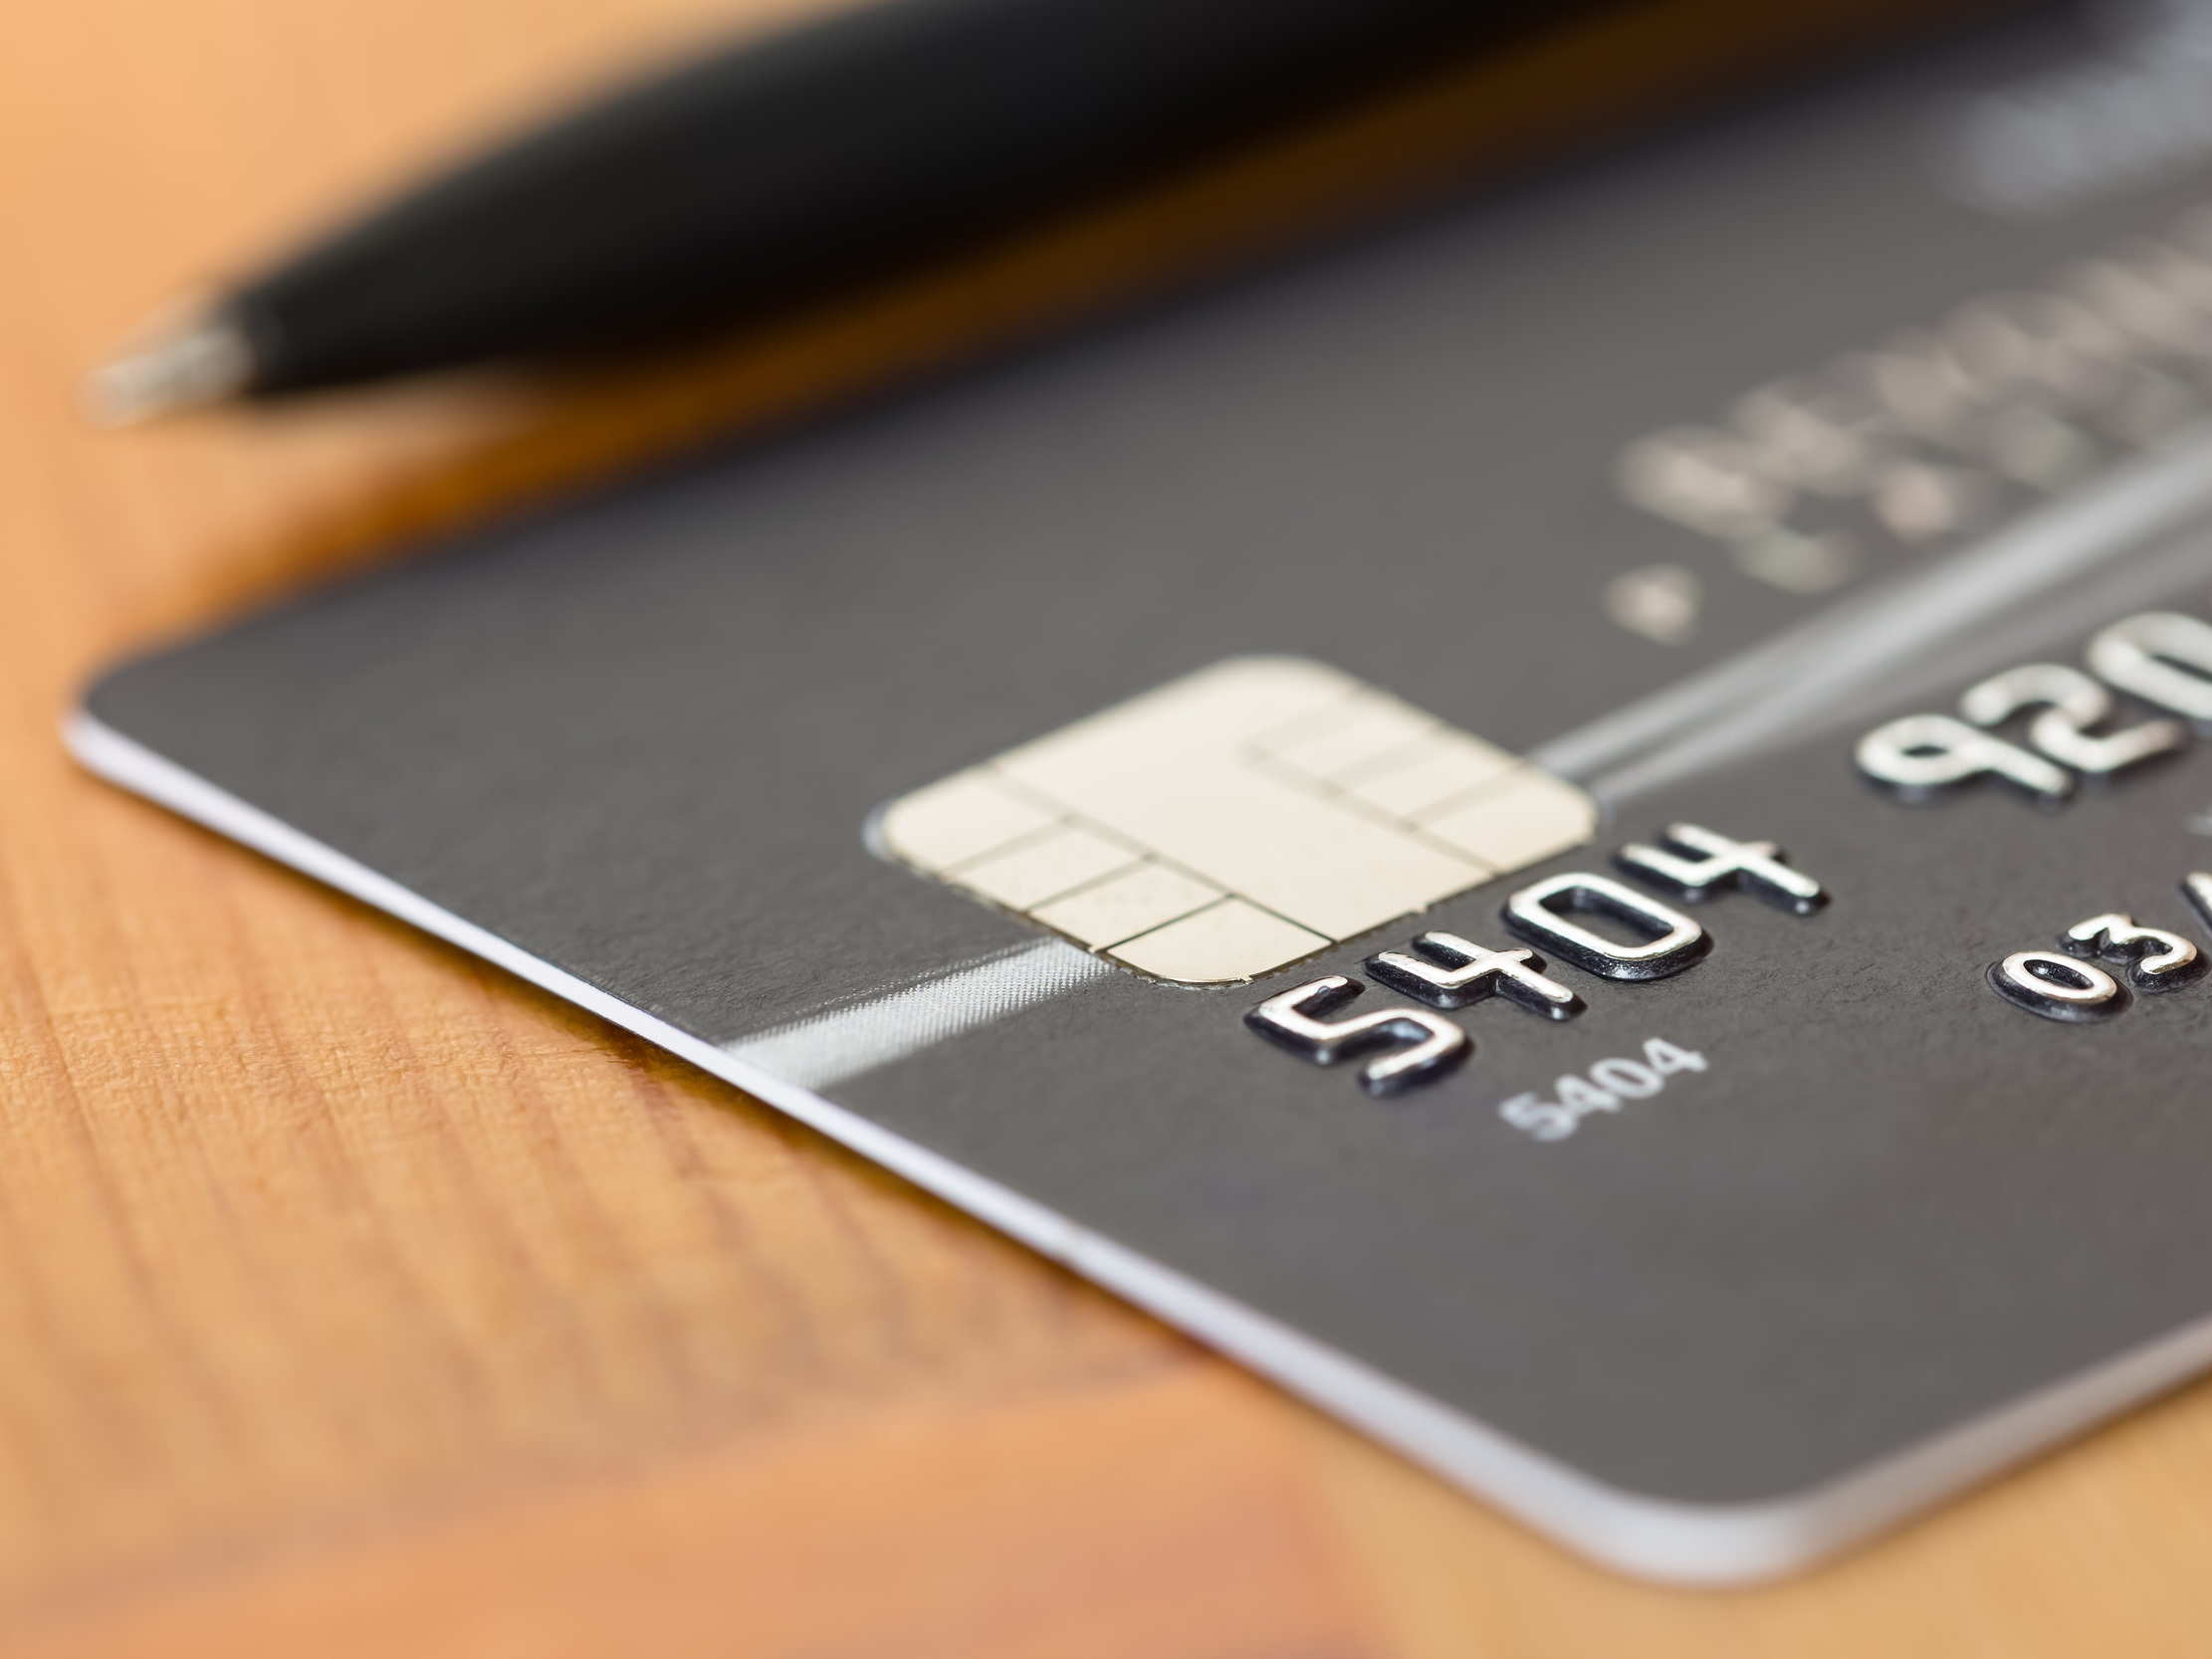 Even if your credit isn't great, you can still apply for a secured credit card.